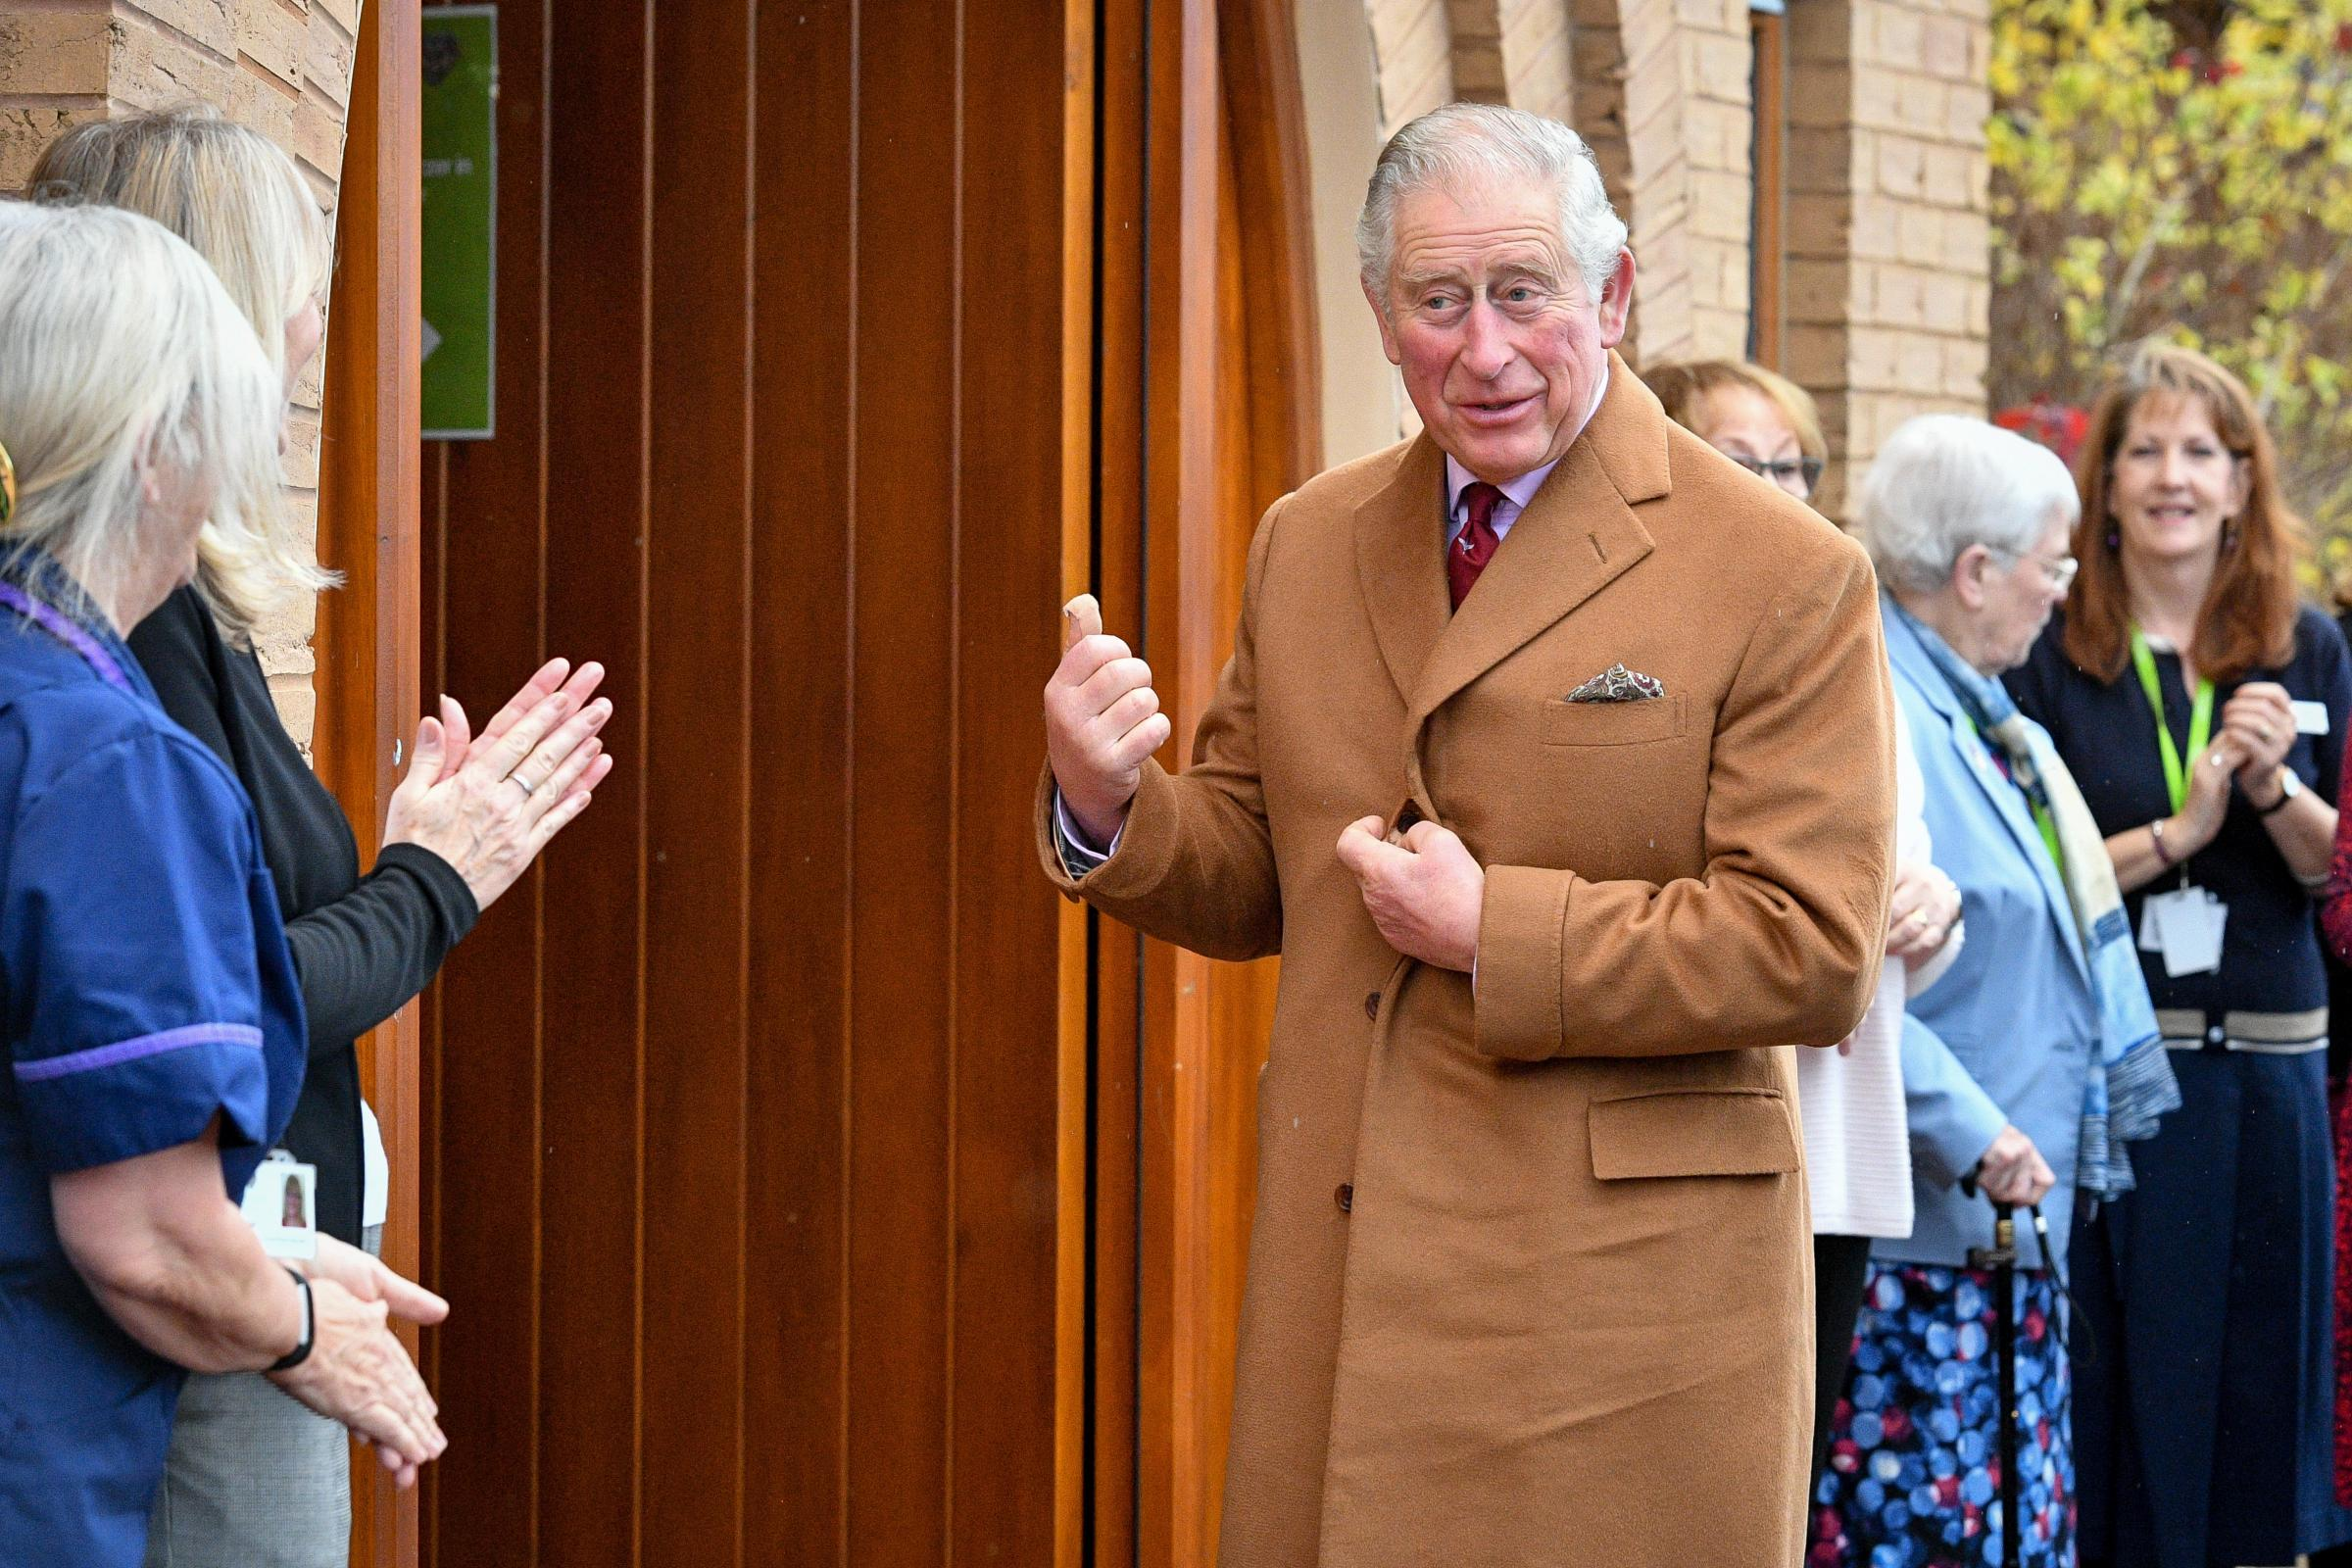 Prince of Wales at hospice